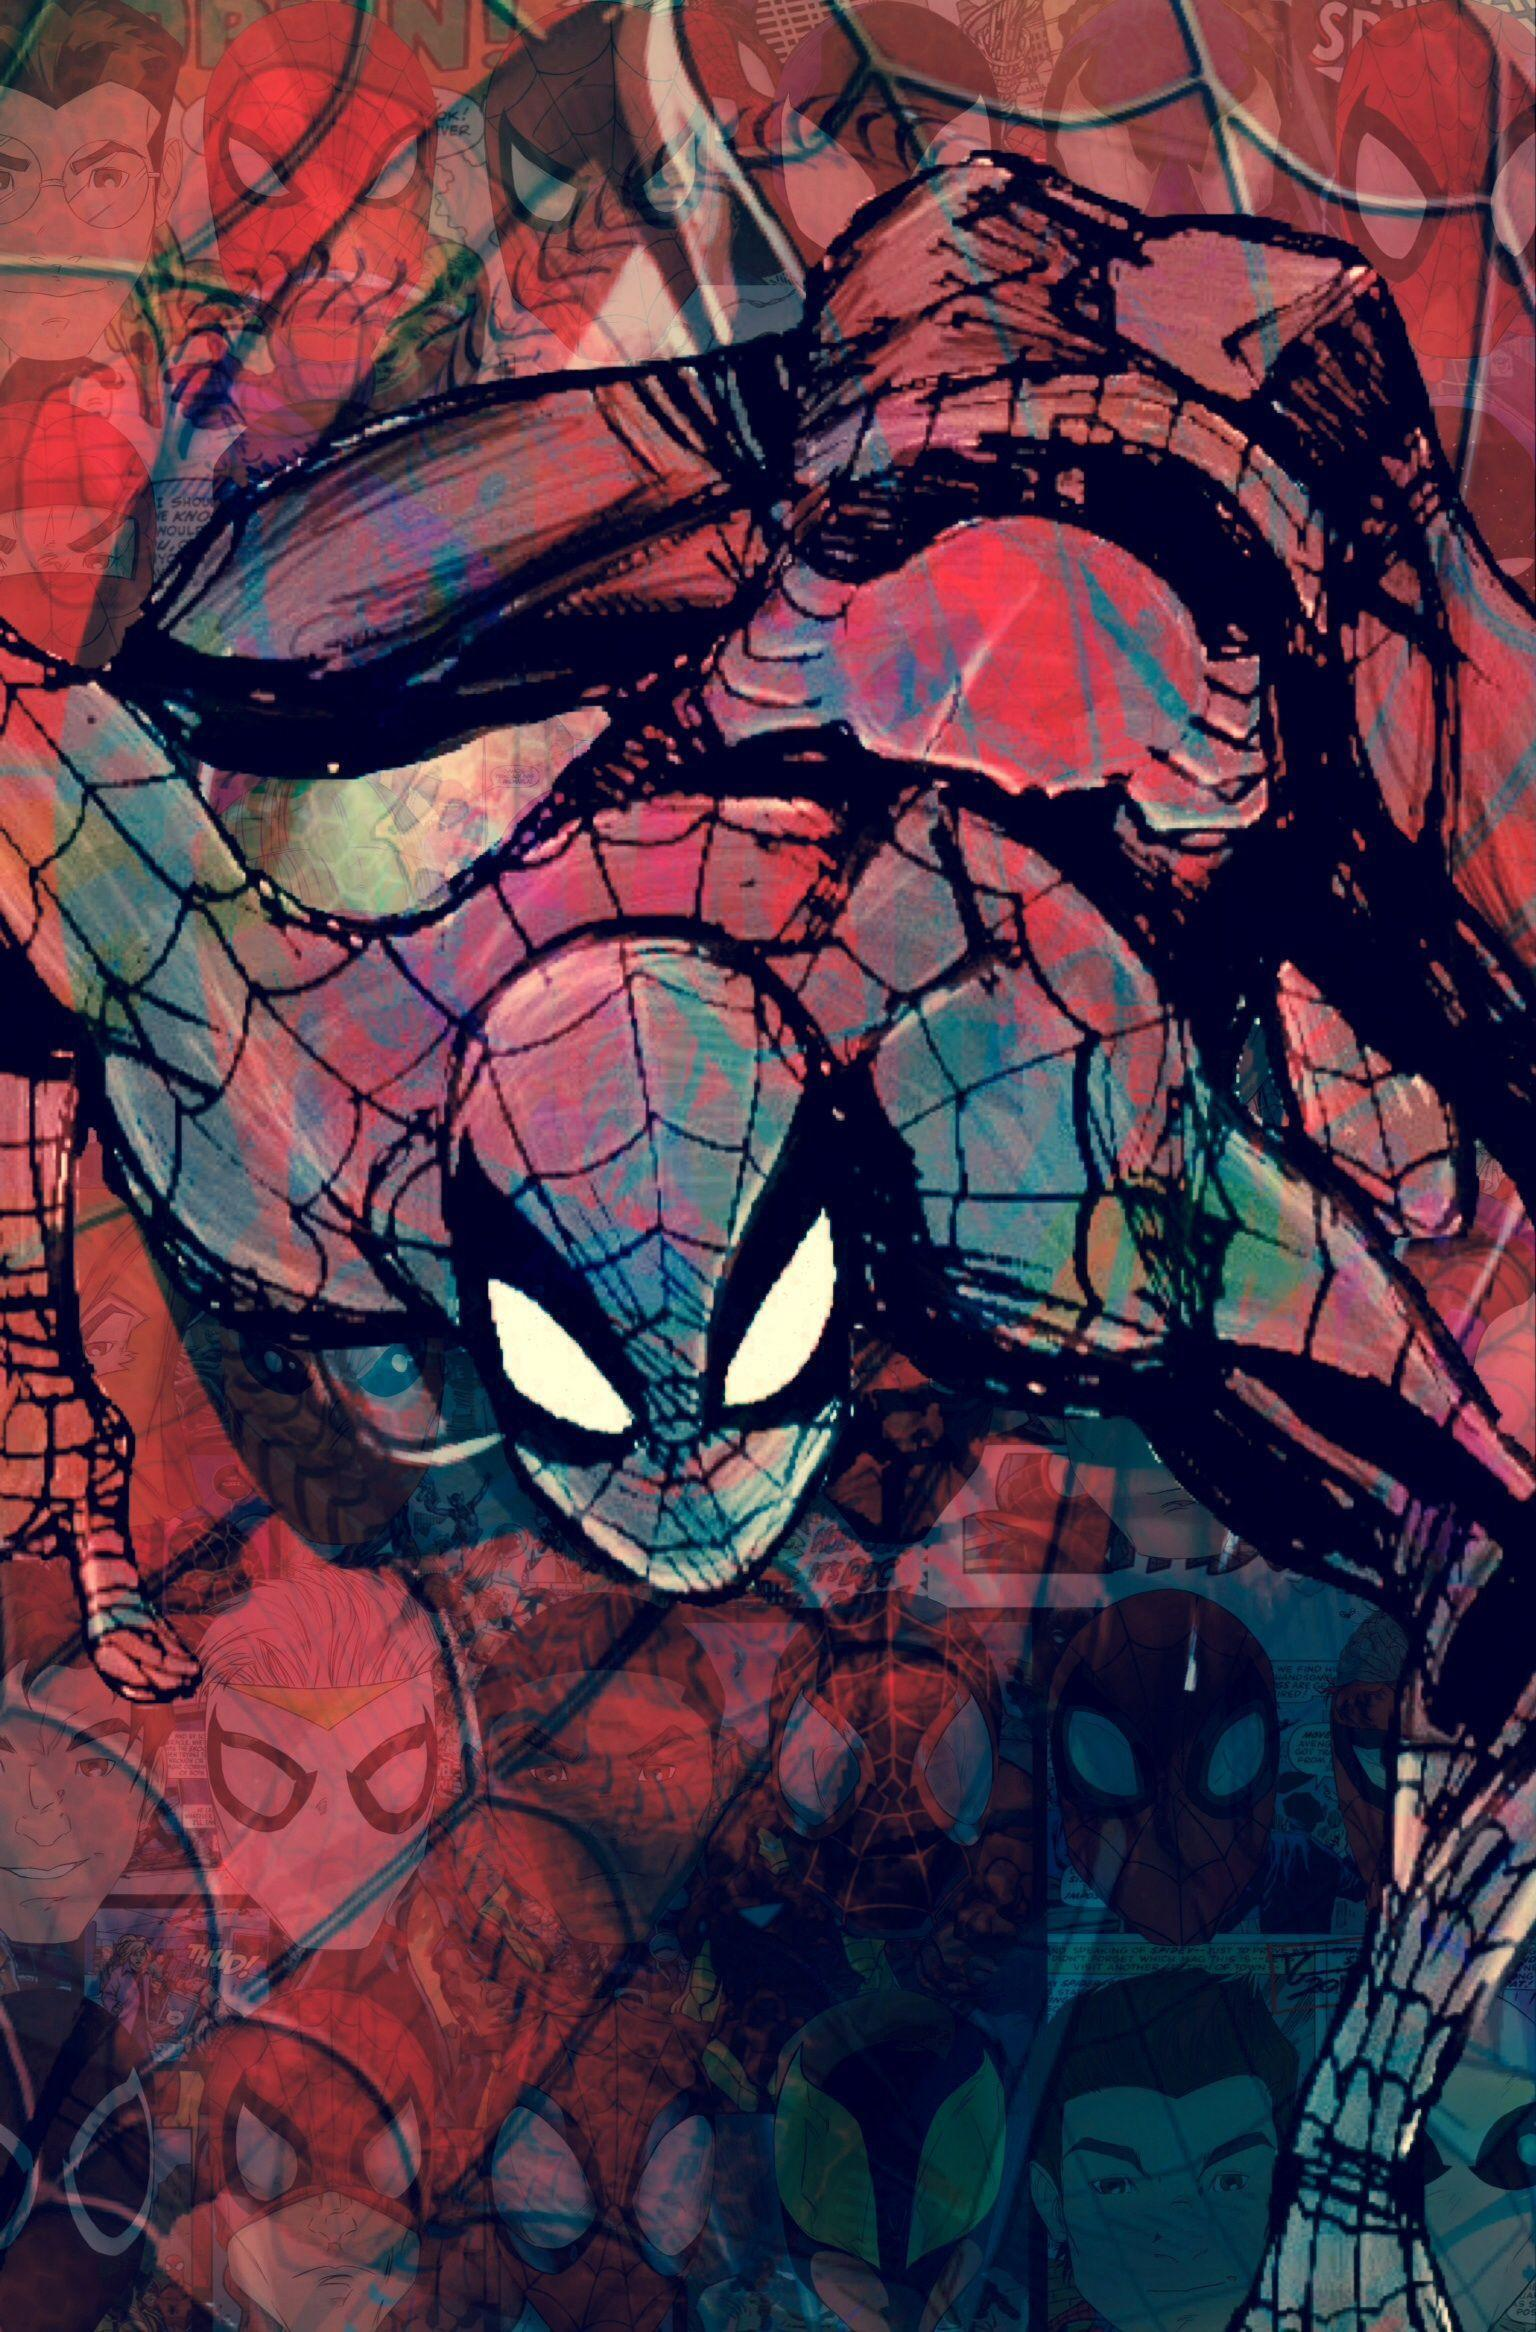 Spiderman IOS Wallpapers by Joey